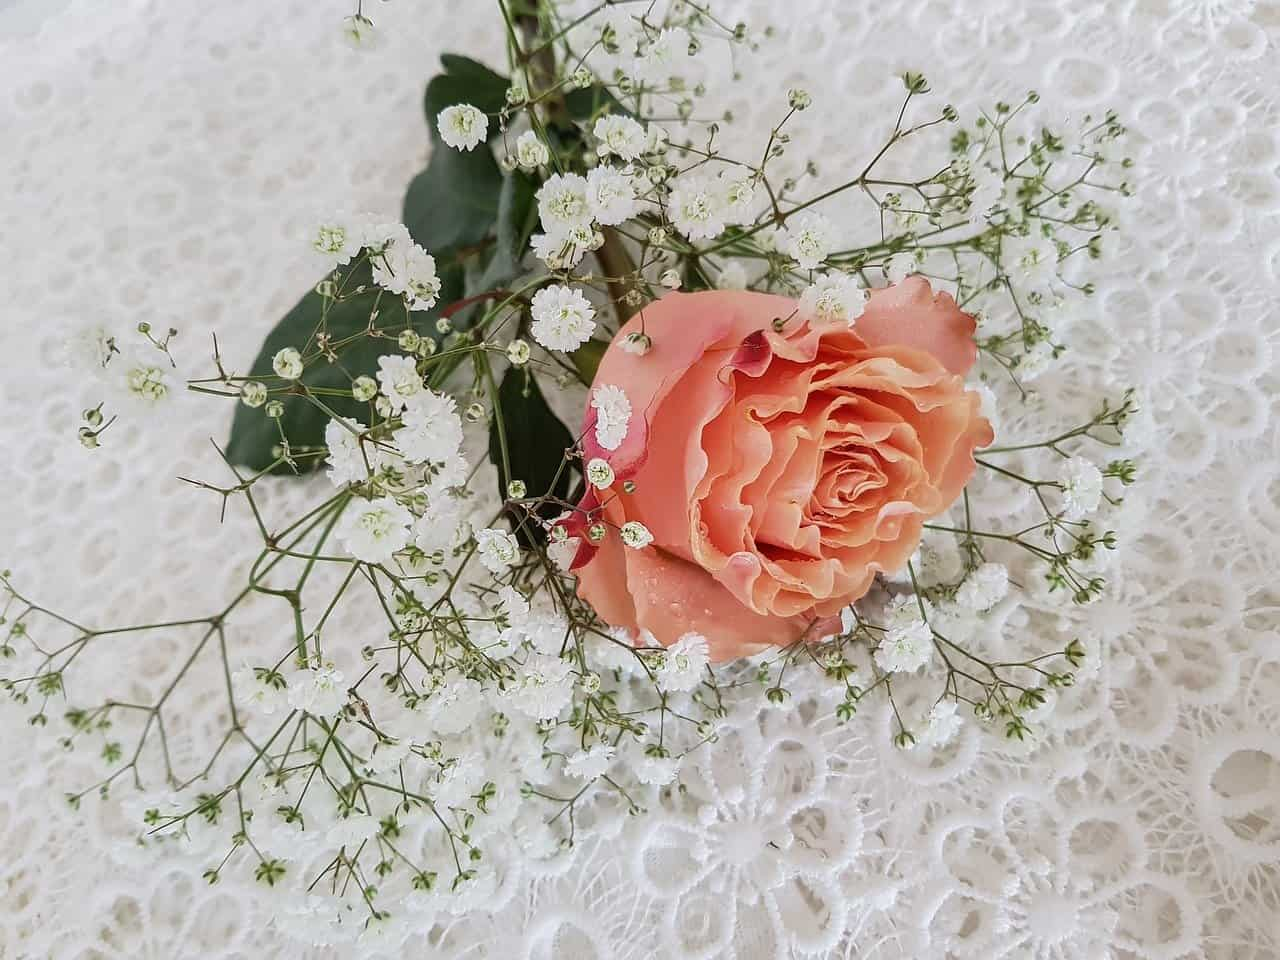 lace and flower for valentines, valentine's day facts